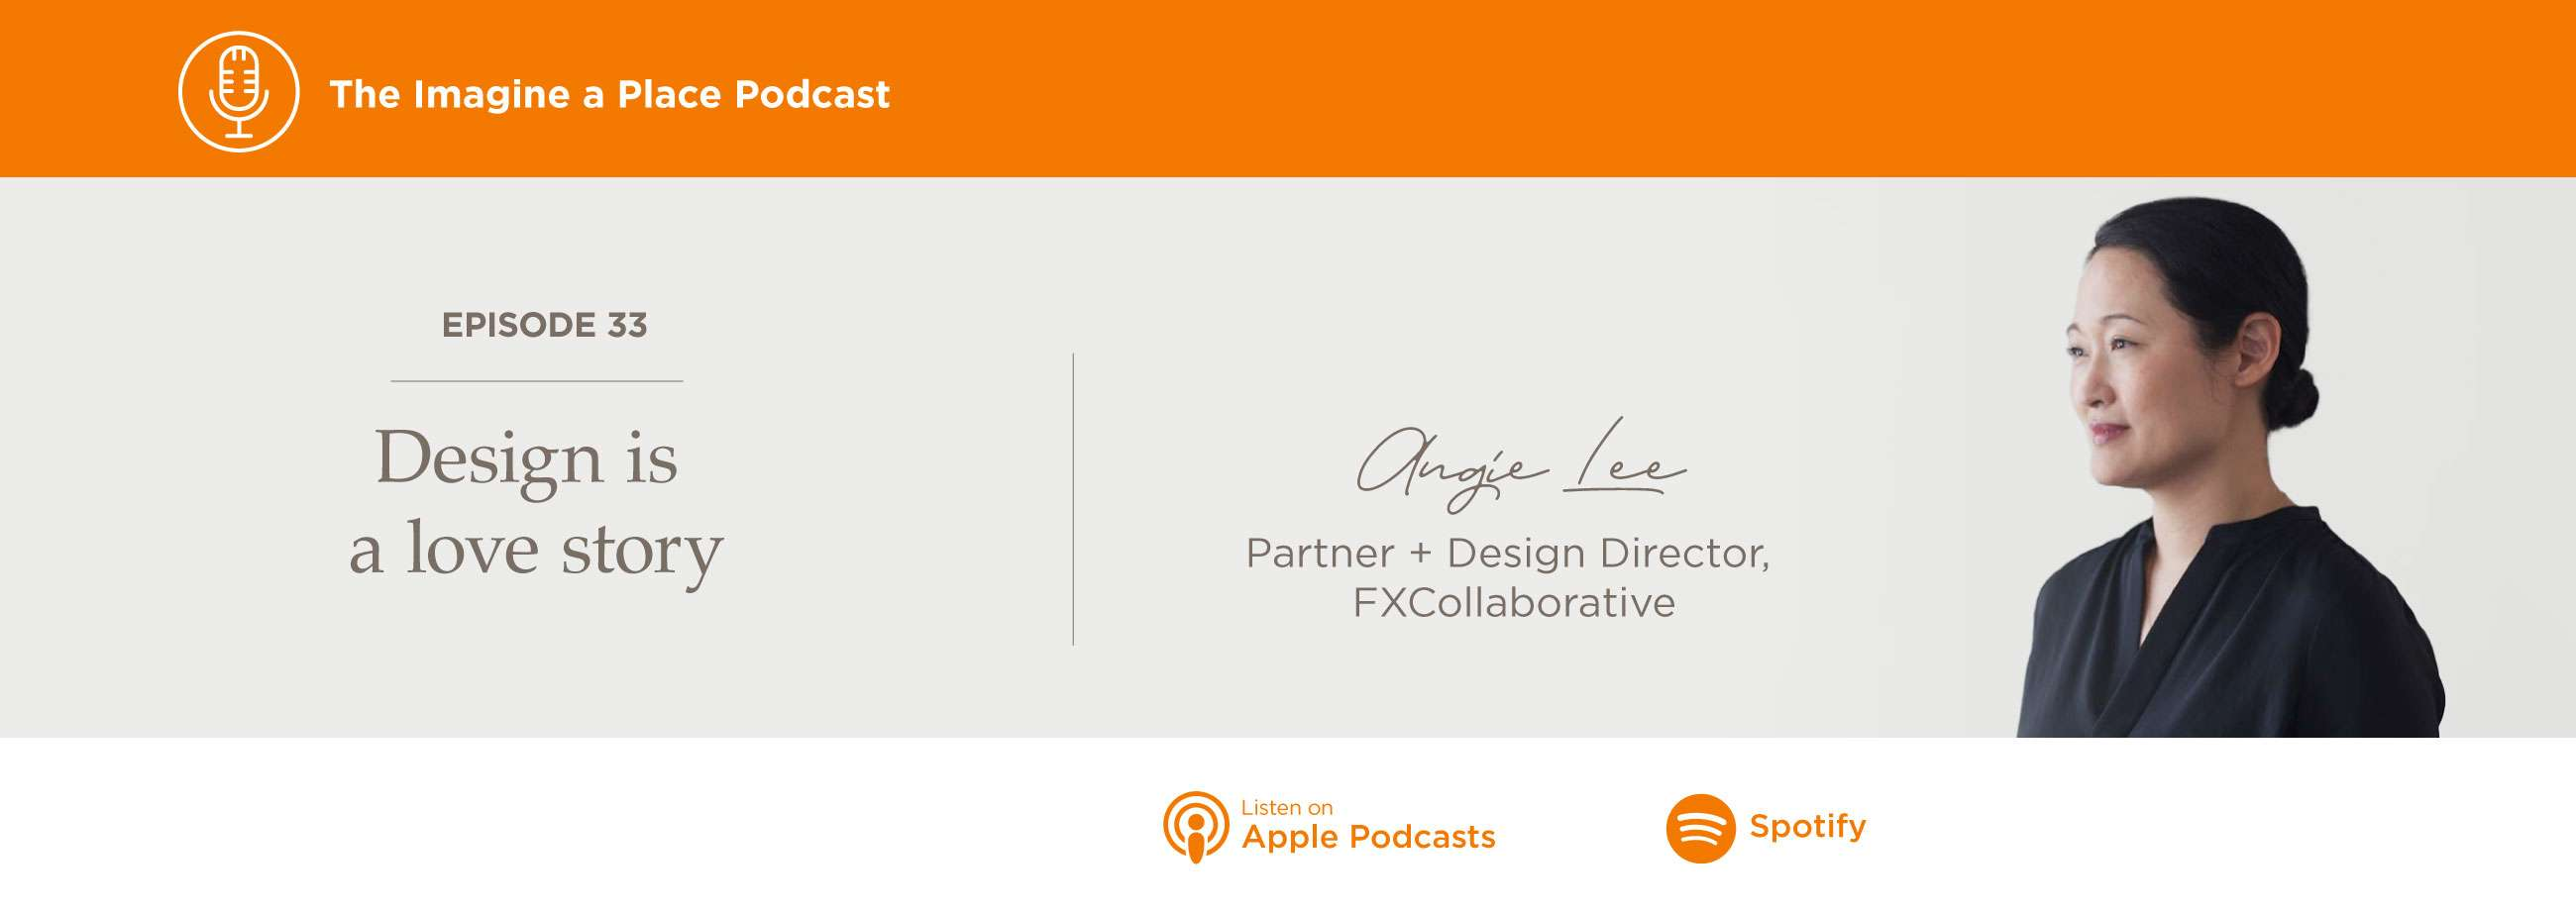 Imagine a Place Podcast with Angie Lee of FXCollaborative